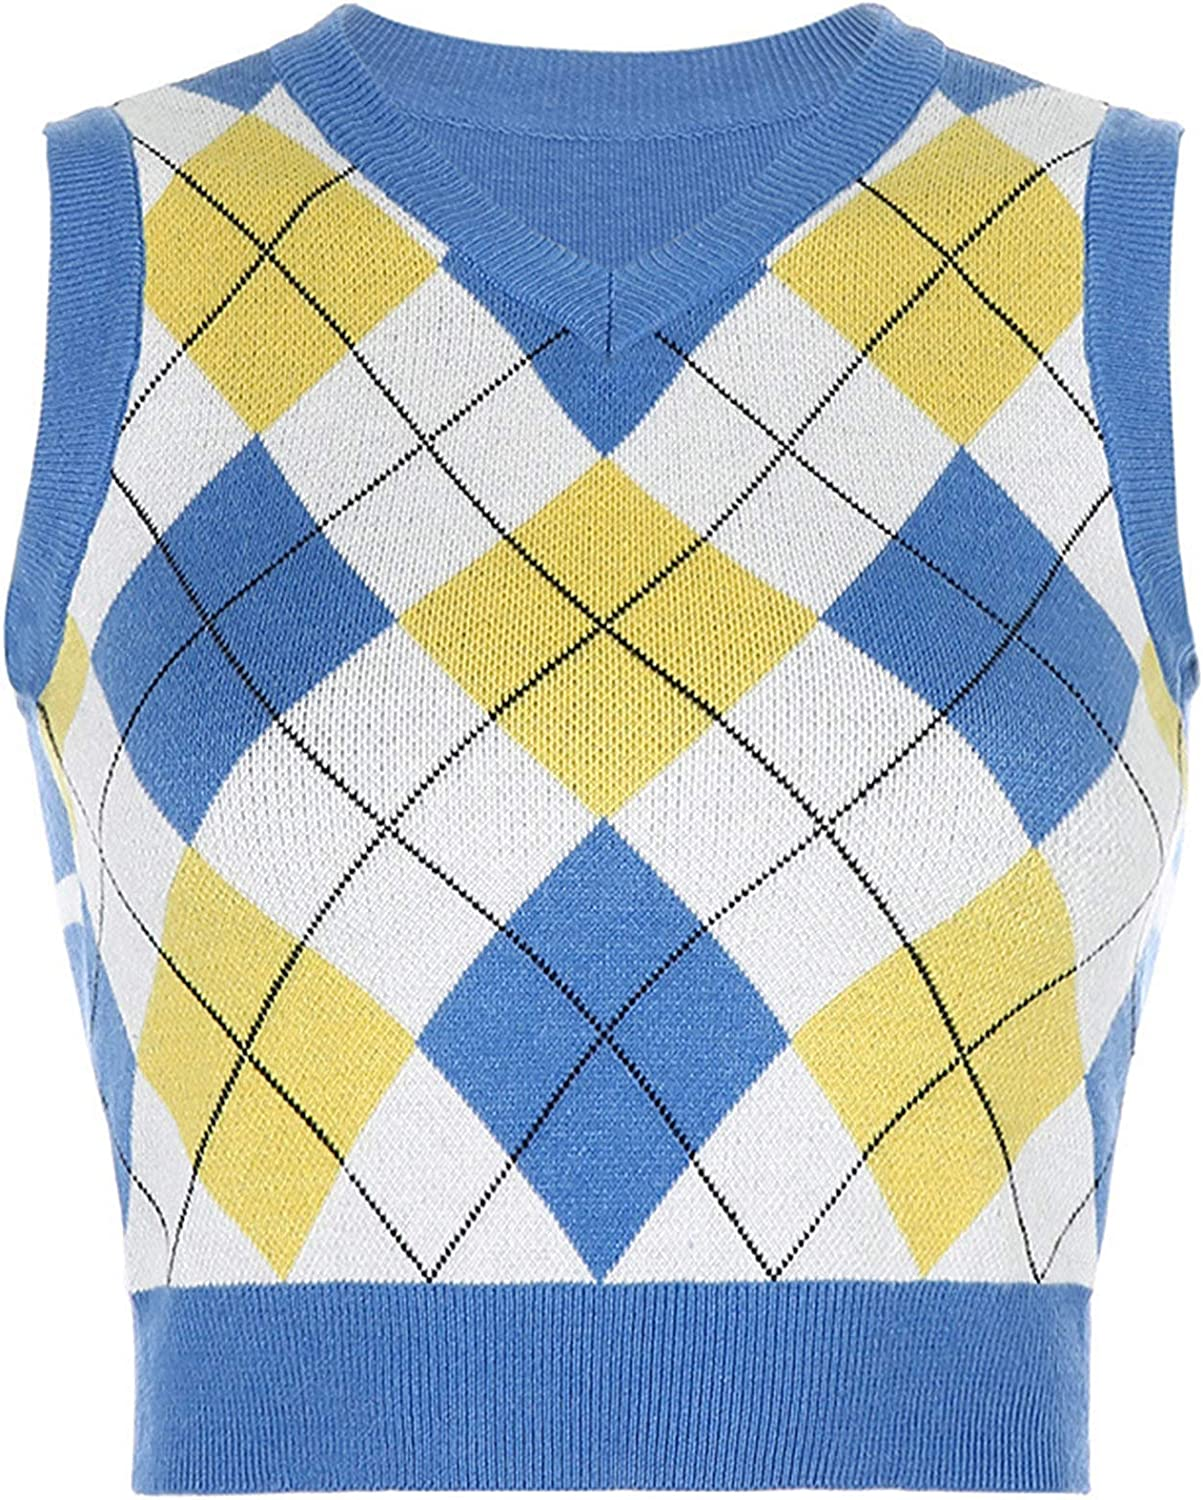 Women Plaid Knitted Sweater Vest Preppy Style Knitwear Tank Top V-Neck Sleeveless Casual Pullover Tank Tops (Blue 3,Large)